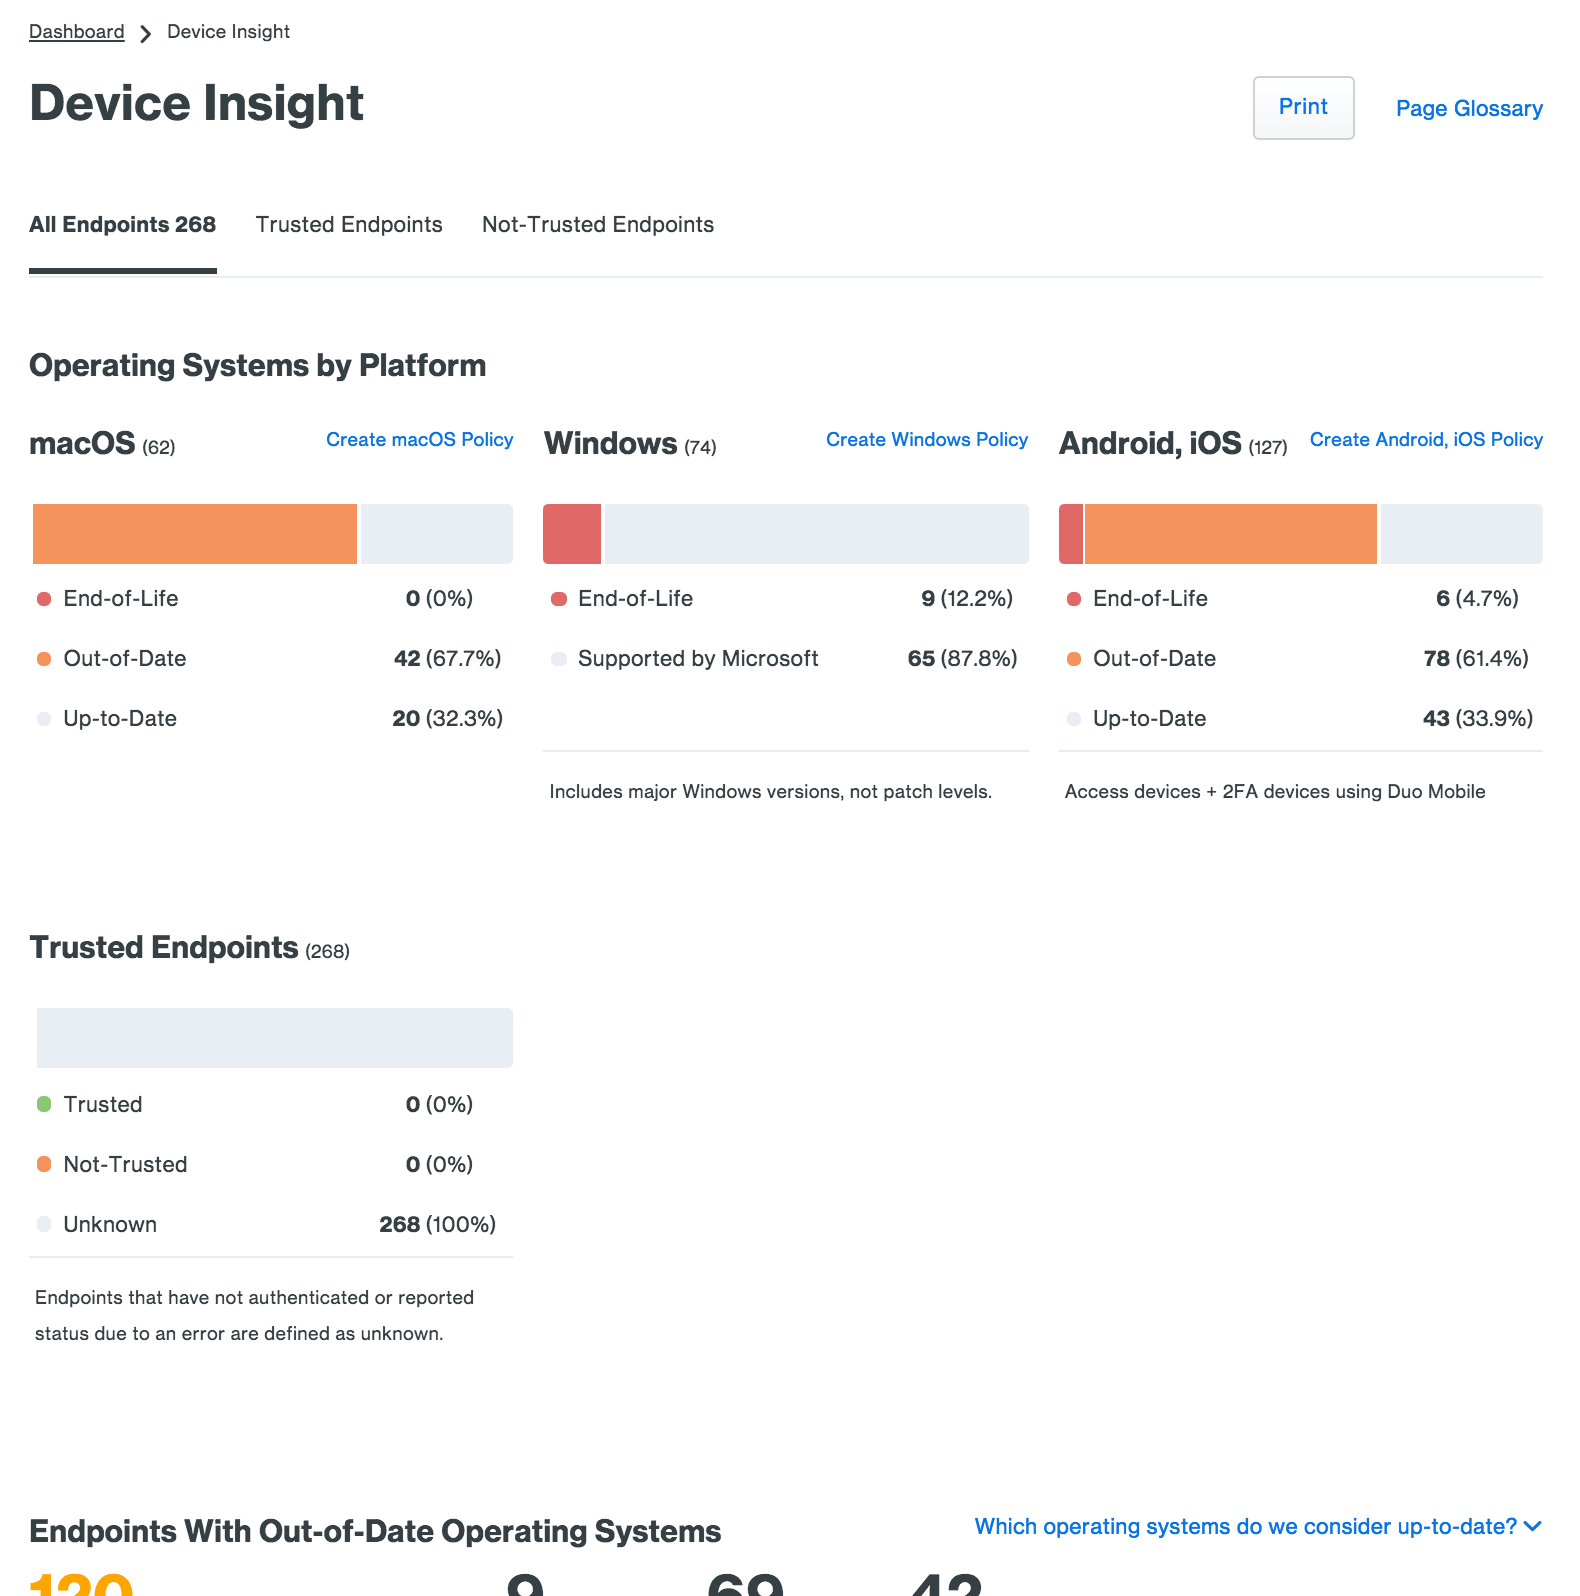 Device Insight Overview